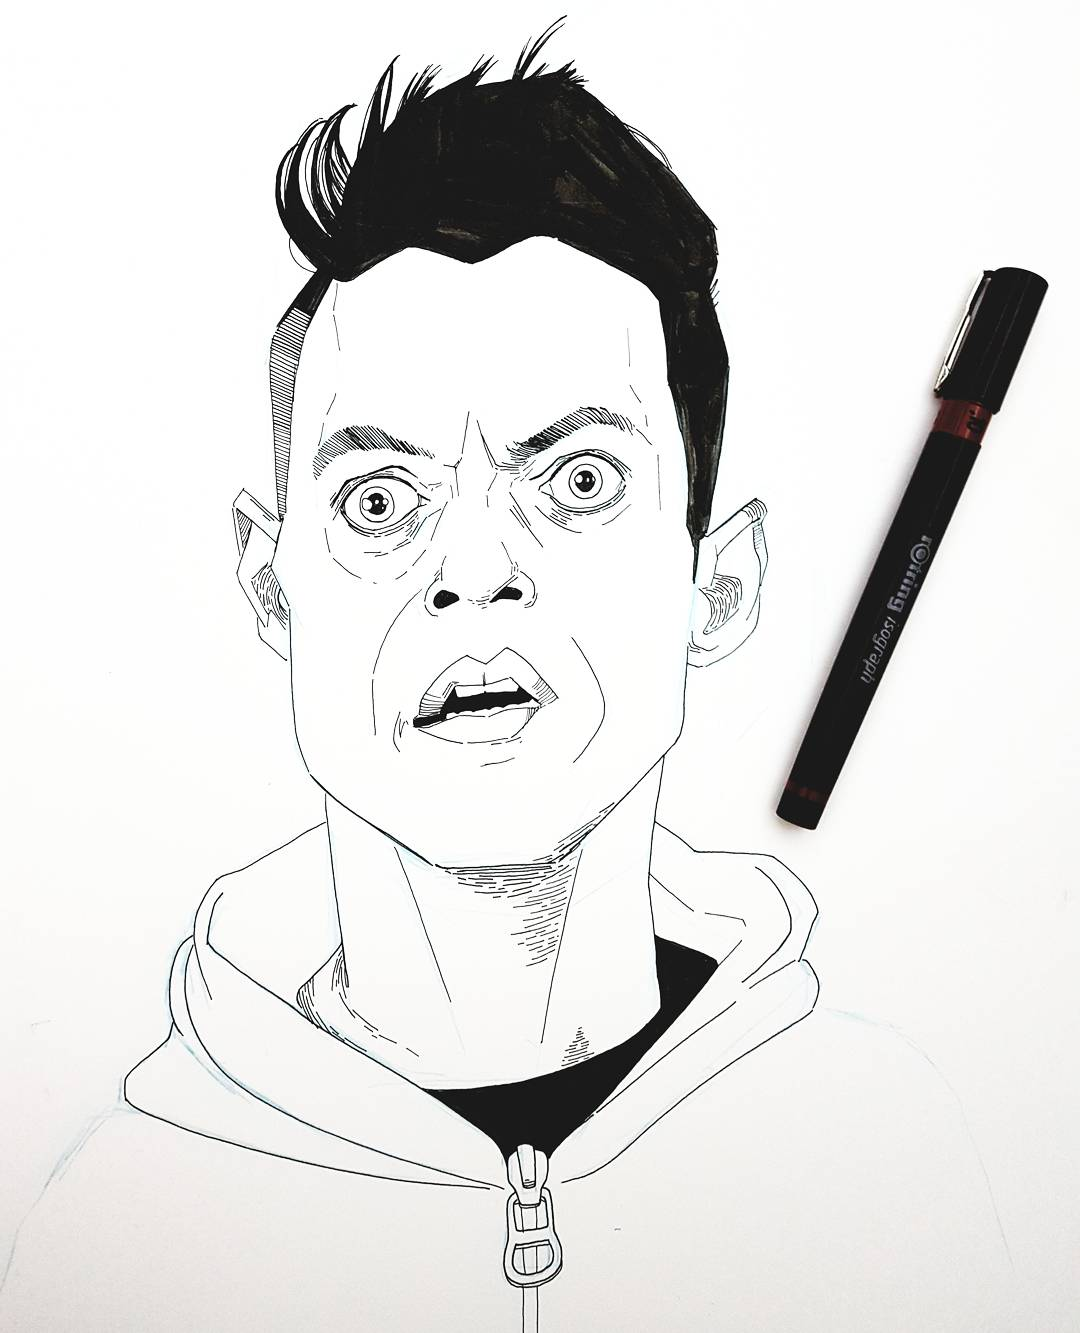 Mr Robot Elliot drawing